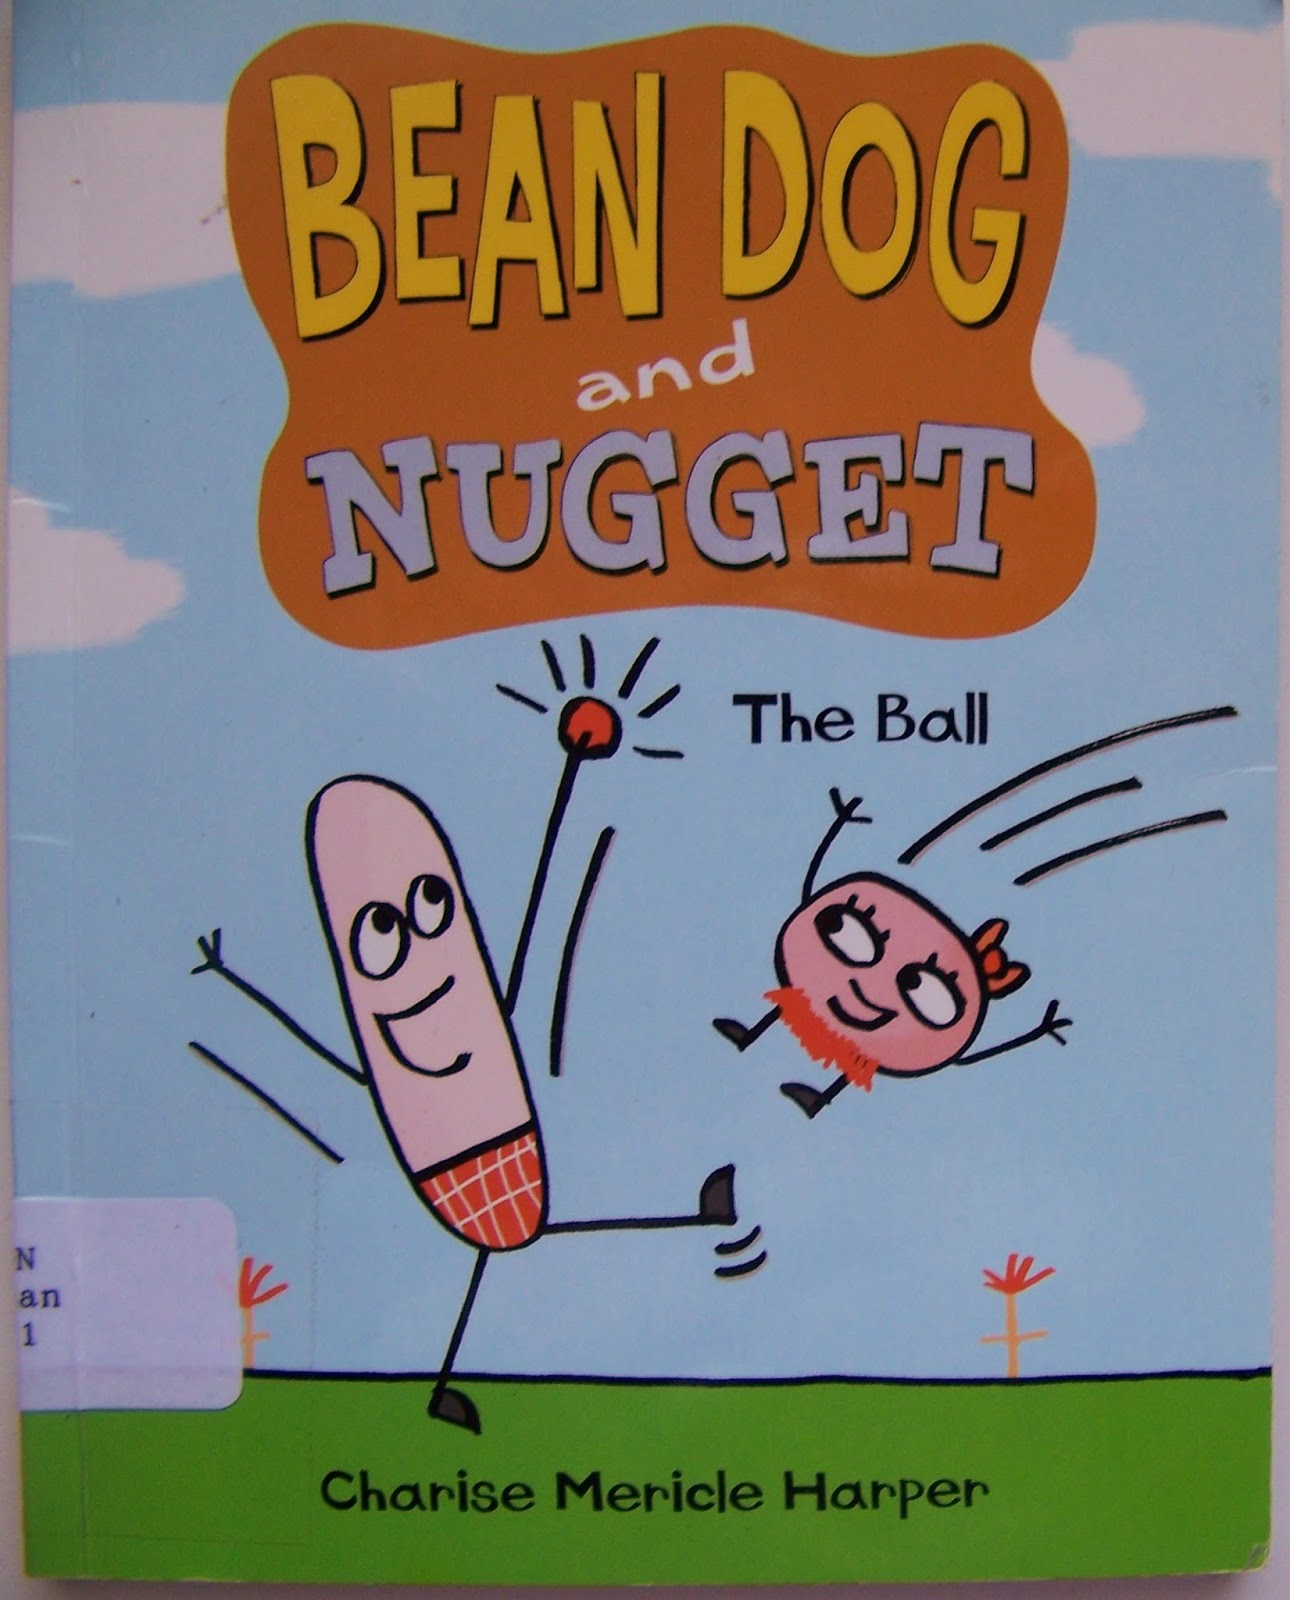 Using Simple Text And Cartoonstyle Illustrations, Charise Mericle Harper  Introduces Young Readers To A New Graphic Novel Series, Bean Dog And Nugget